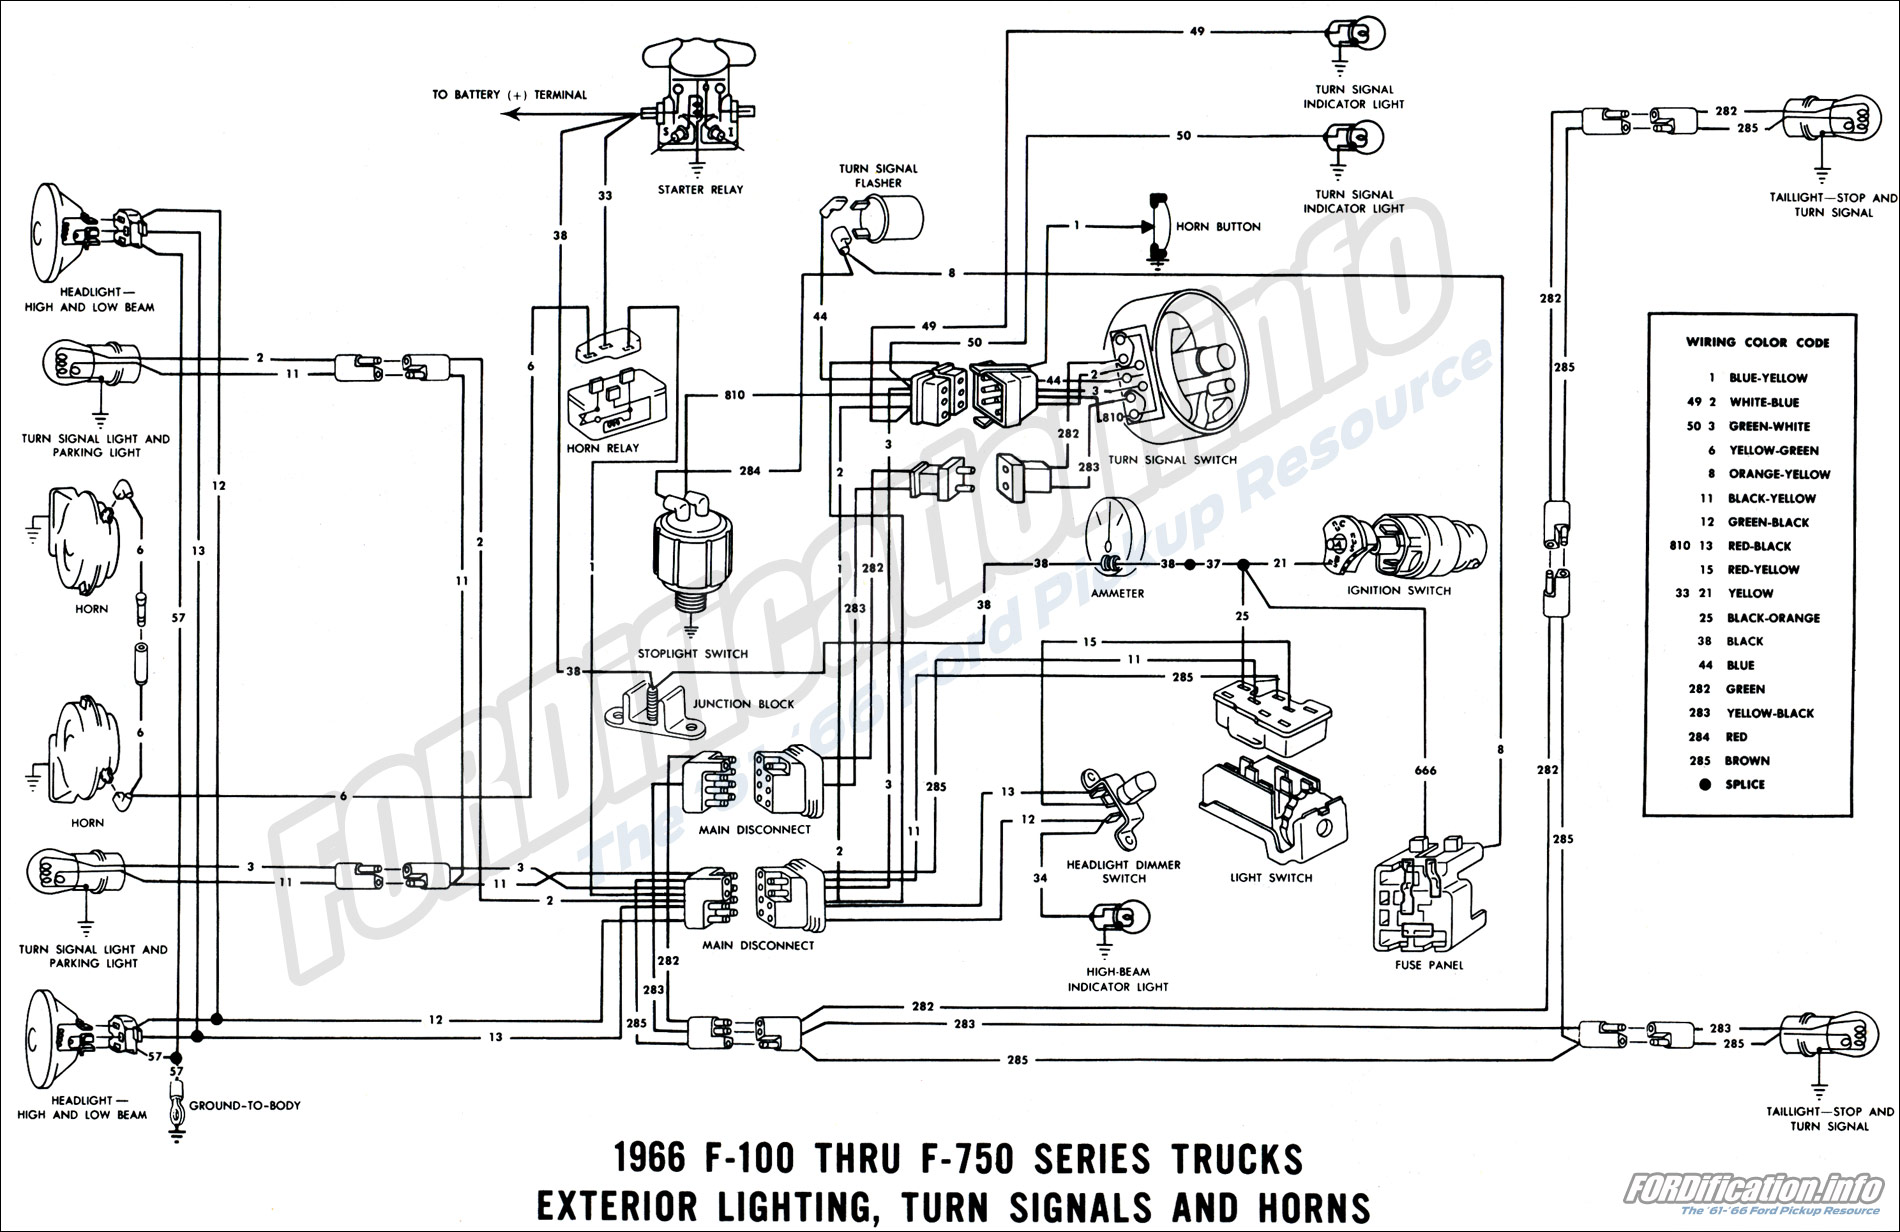 1966 Ford F100 Wiring Diagram Manual E Books